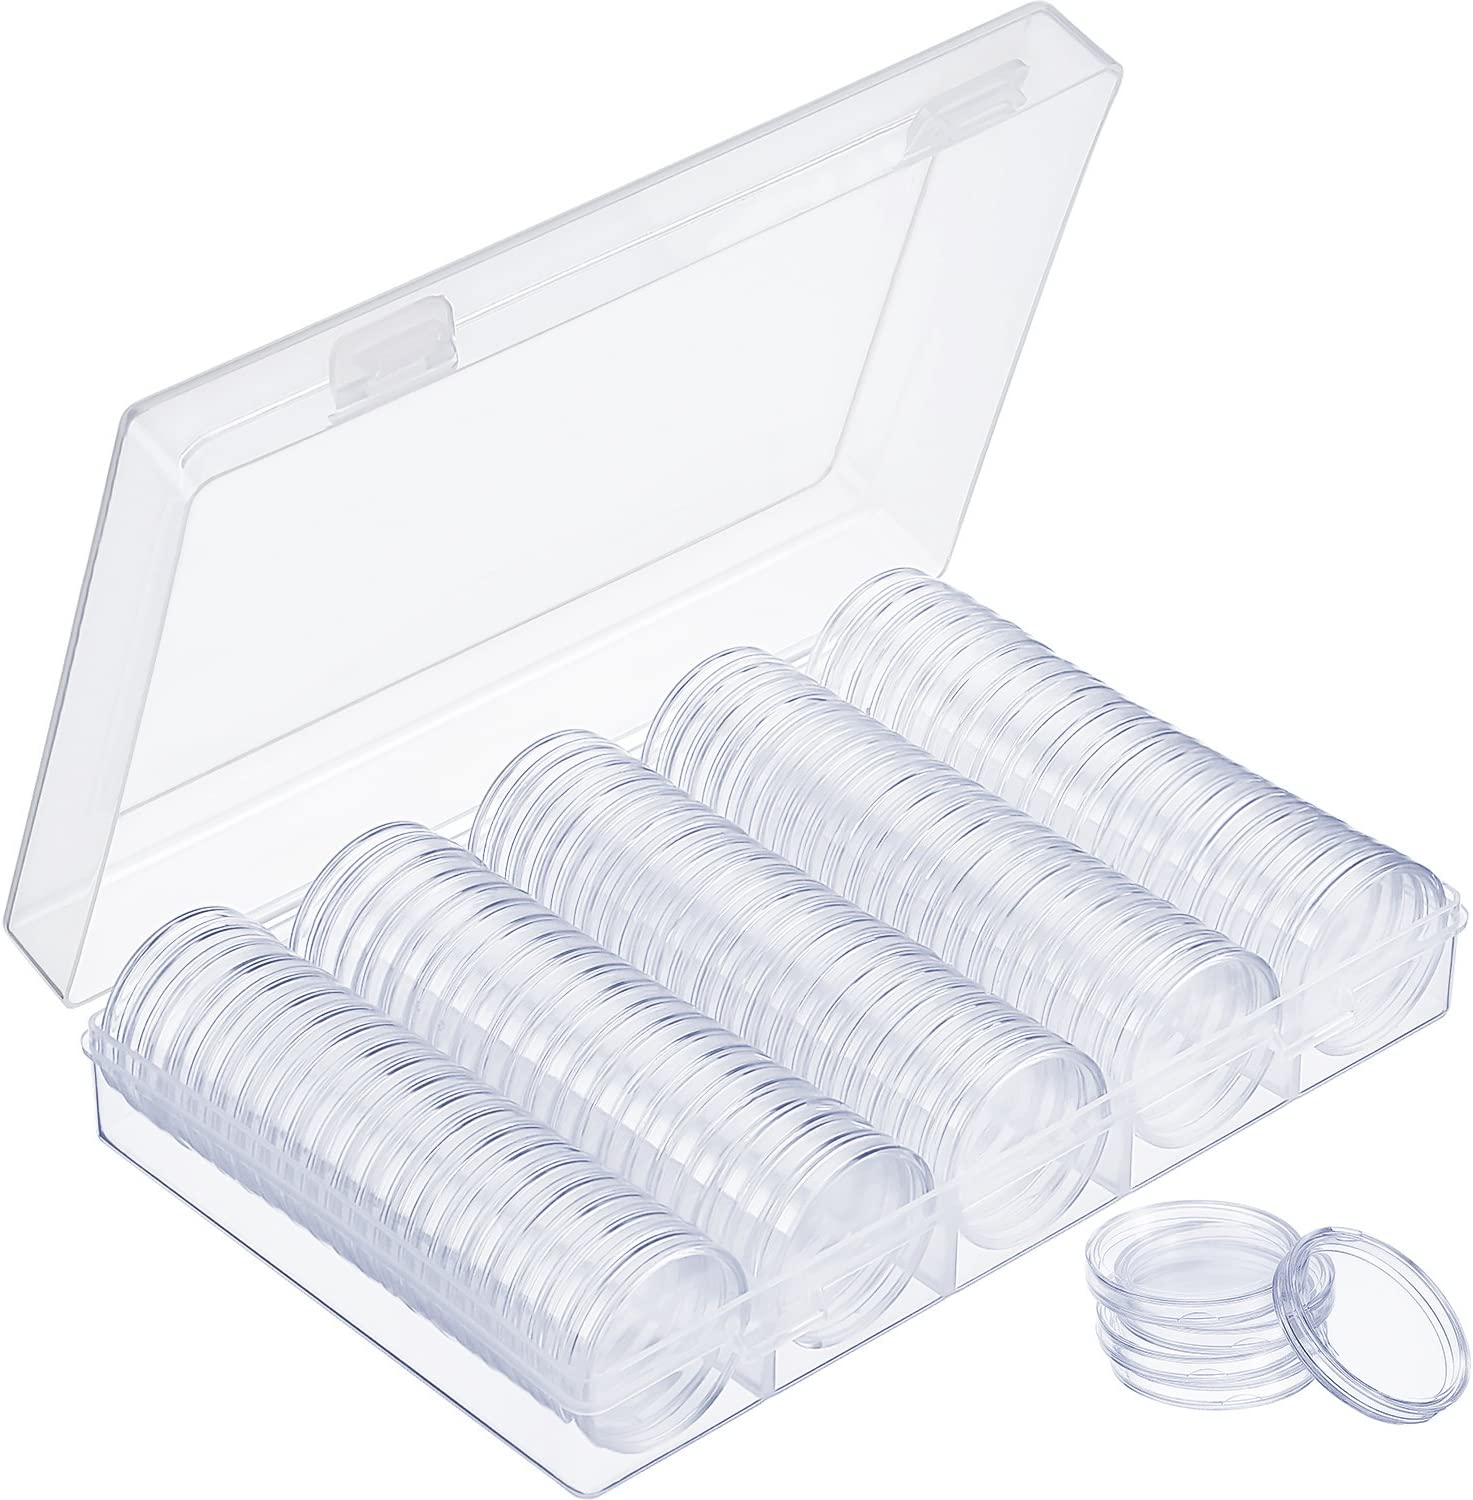 100 Clear Plastic Round Coin Display Capsules Holders Collect Box Containers